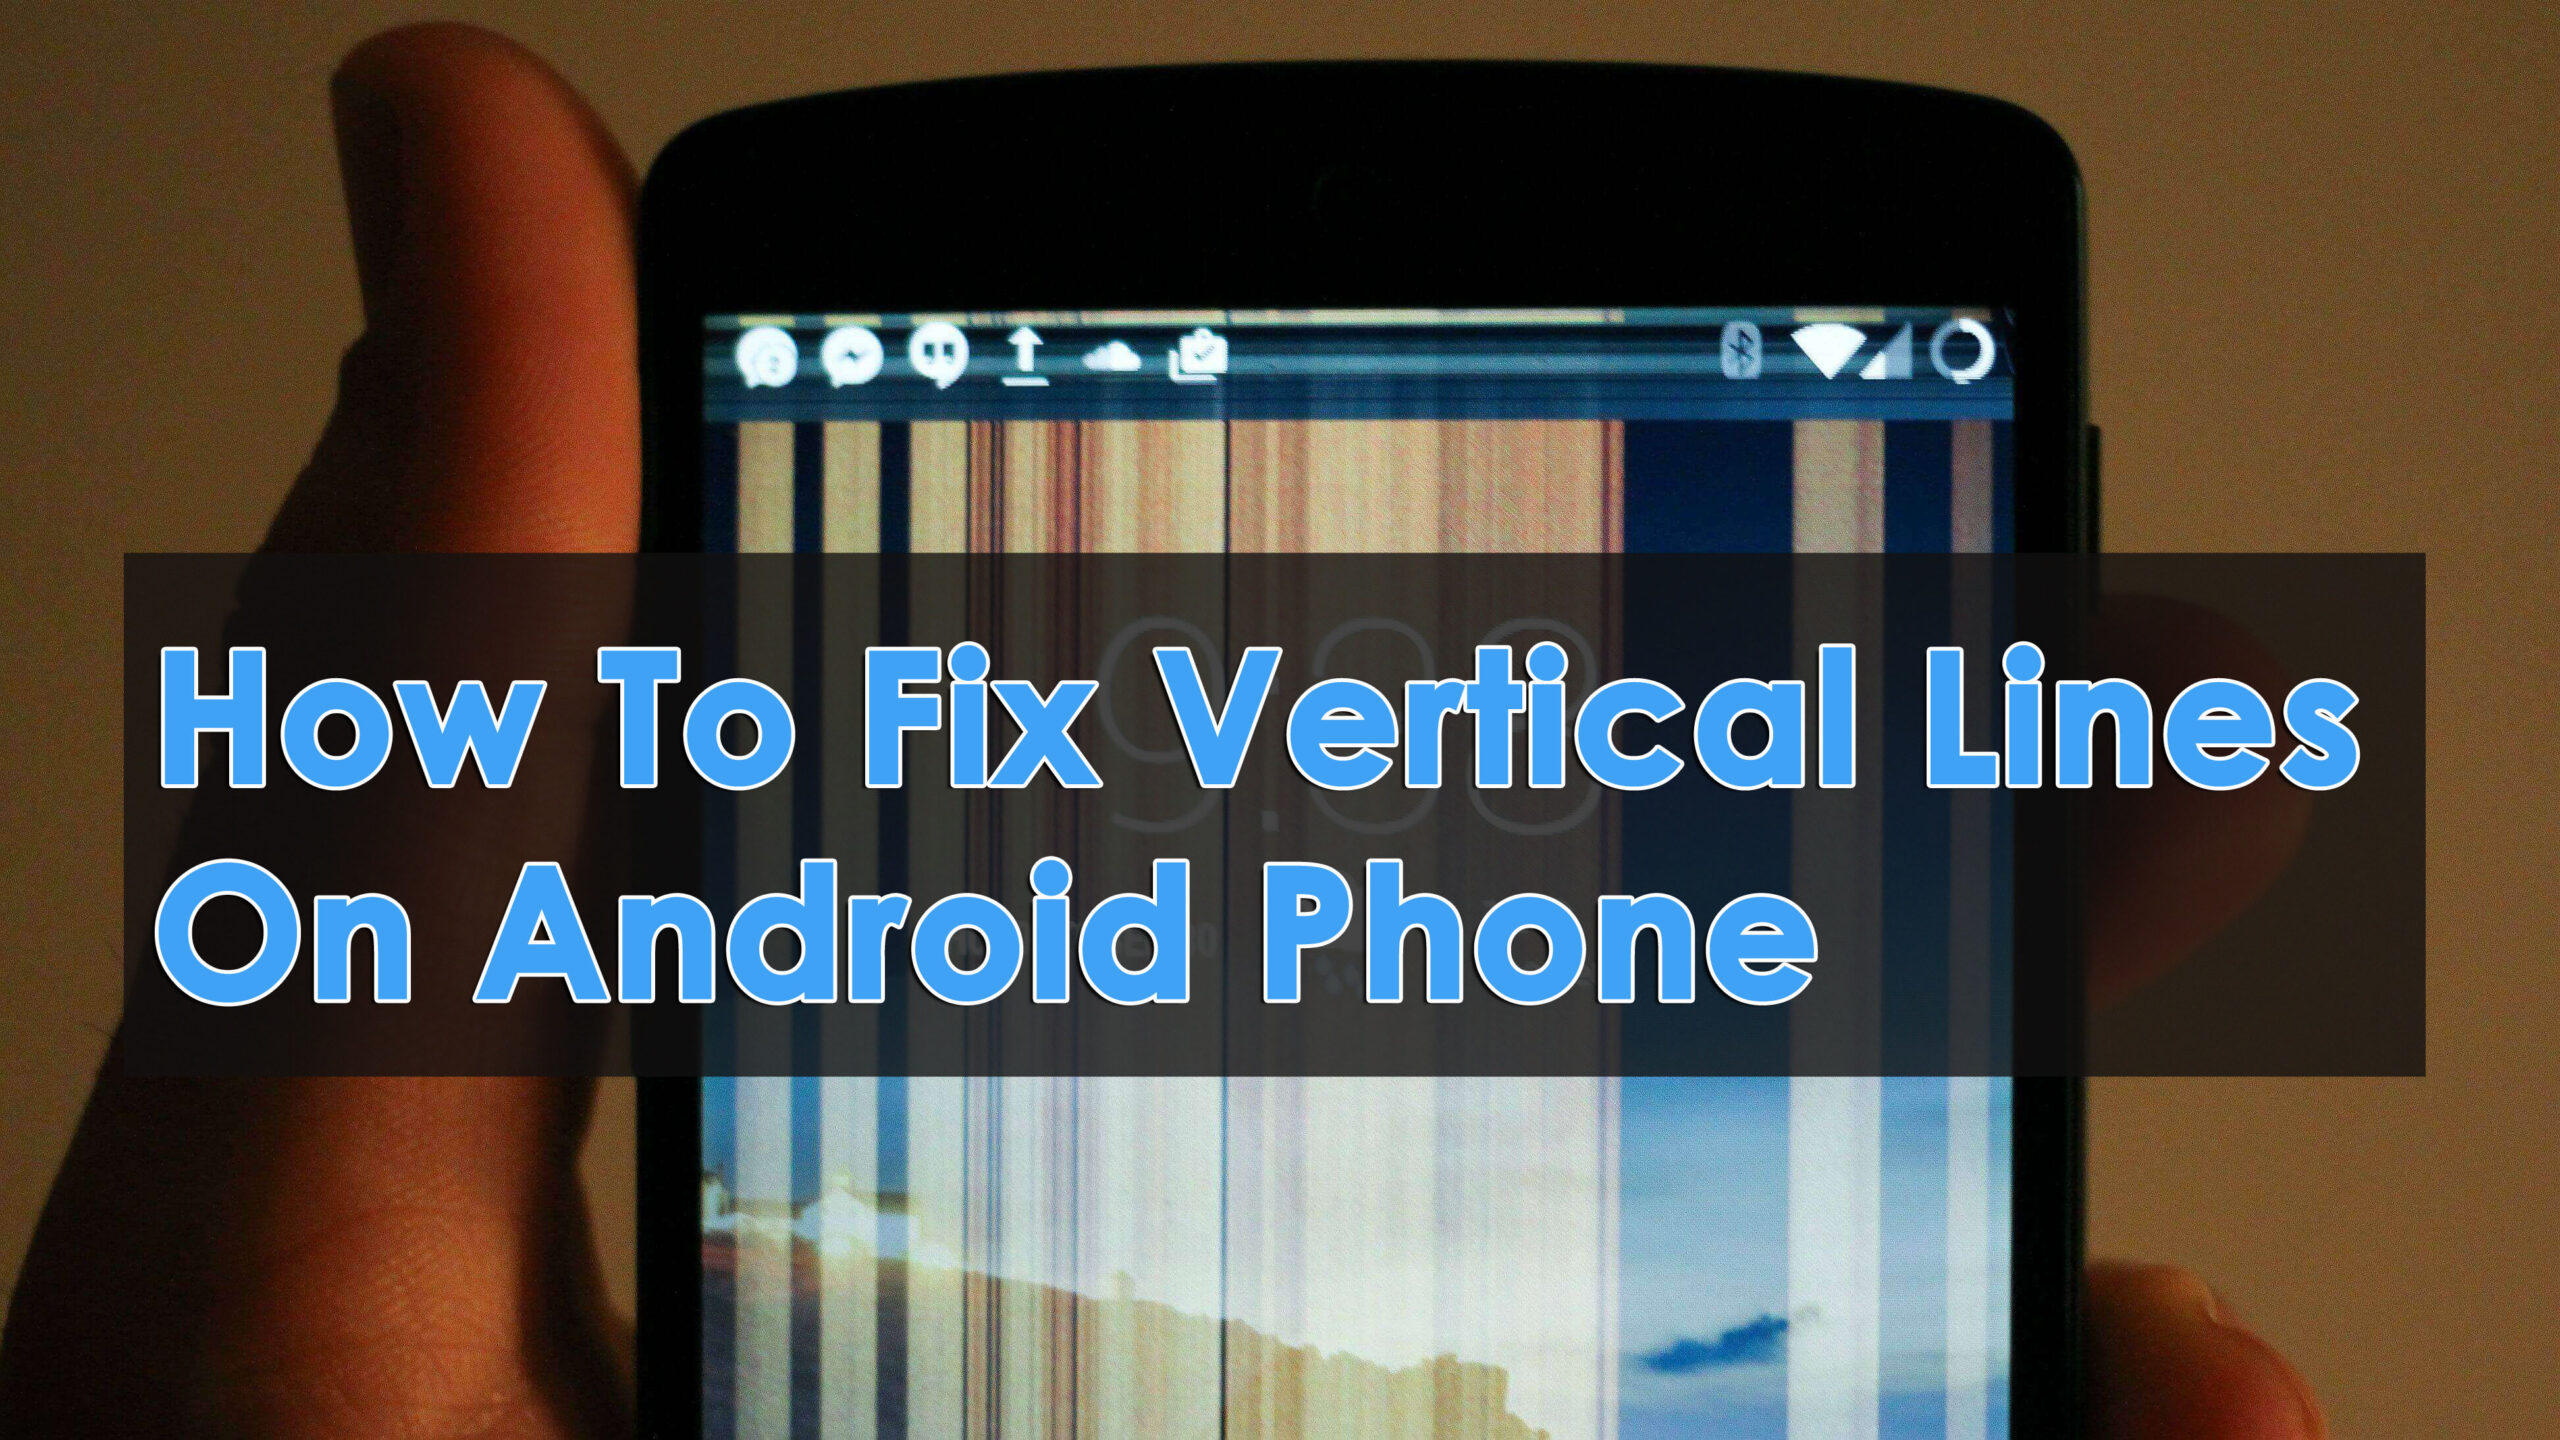 How To Fix Vertical Lines On Android Phone